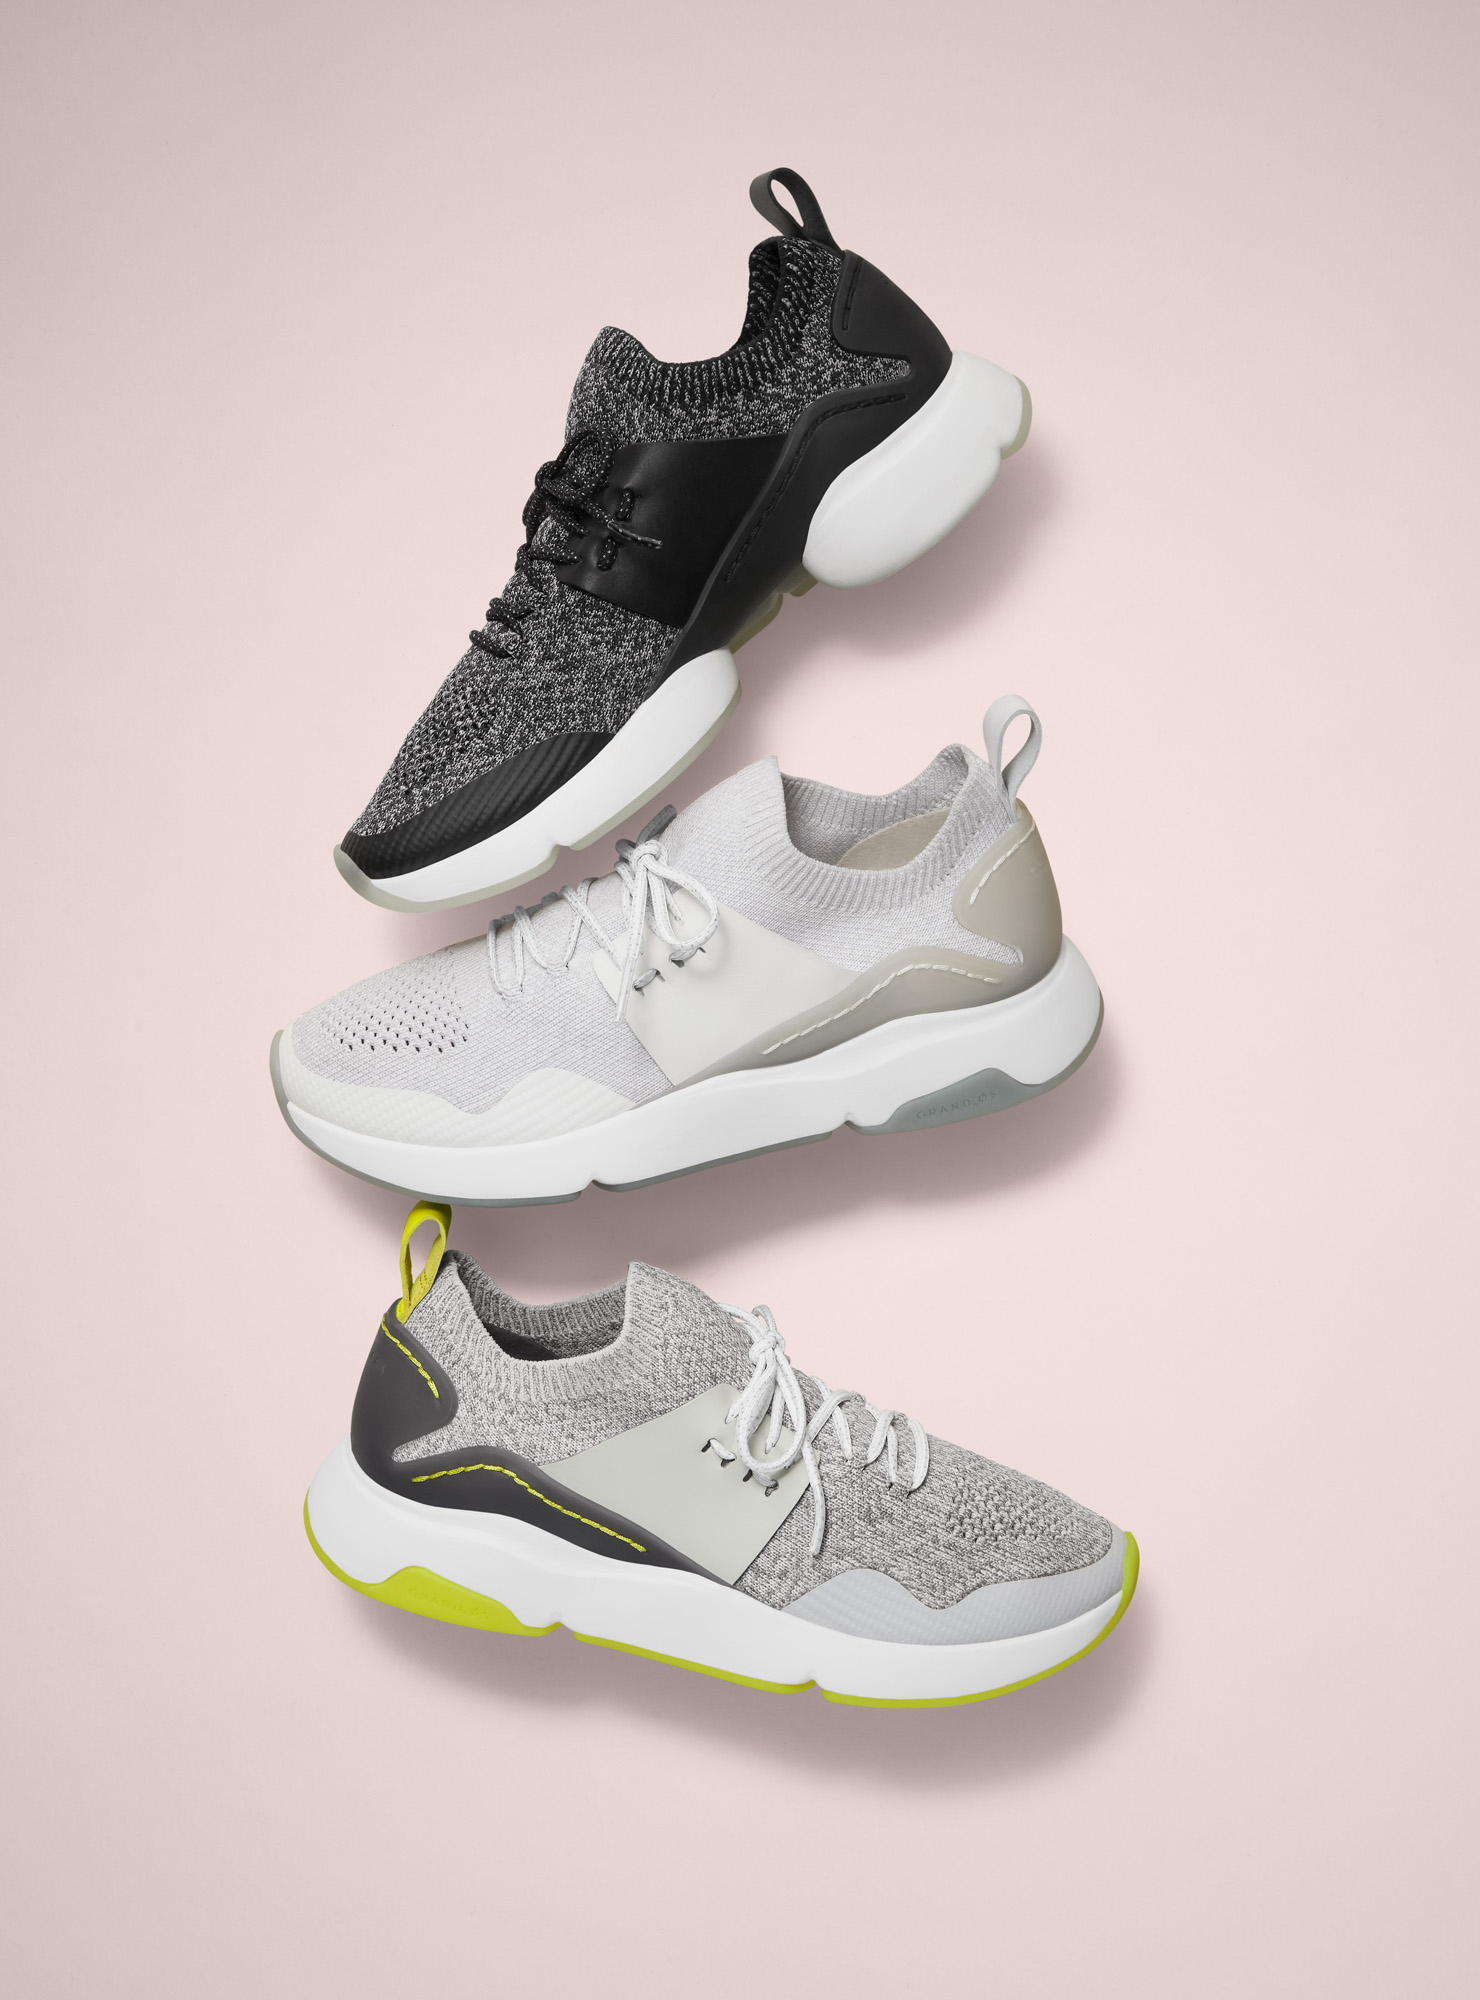 d12d102eb Cole Haan Announces Launch of The ZERØGRAND All-Day Trainer